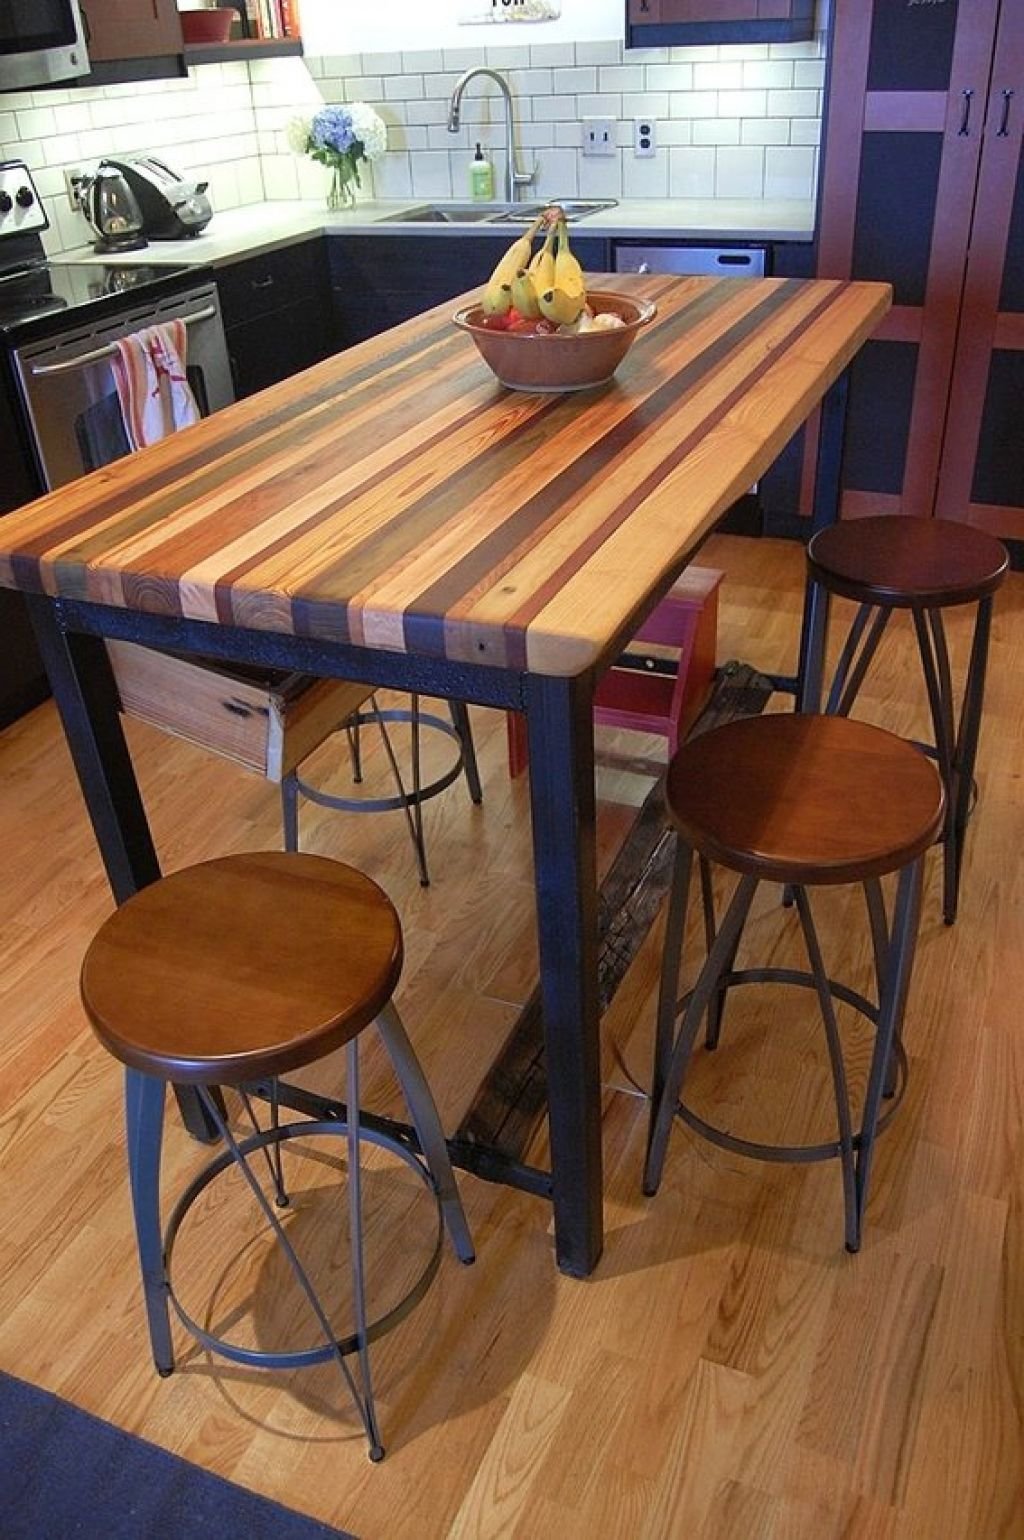 butcher block kitchen table - Google Search | Butcher block ...